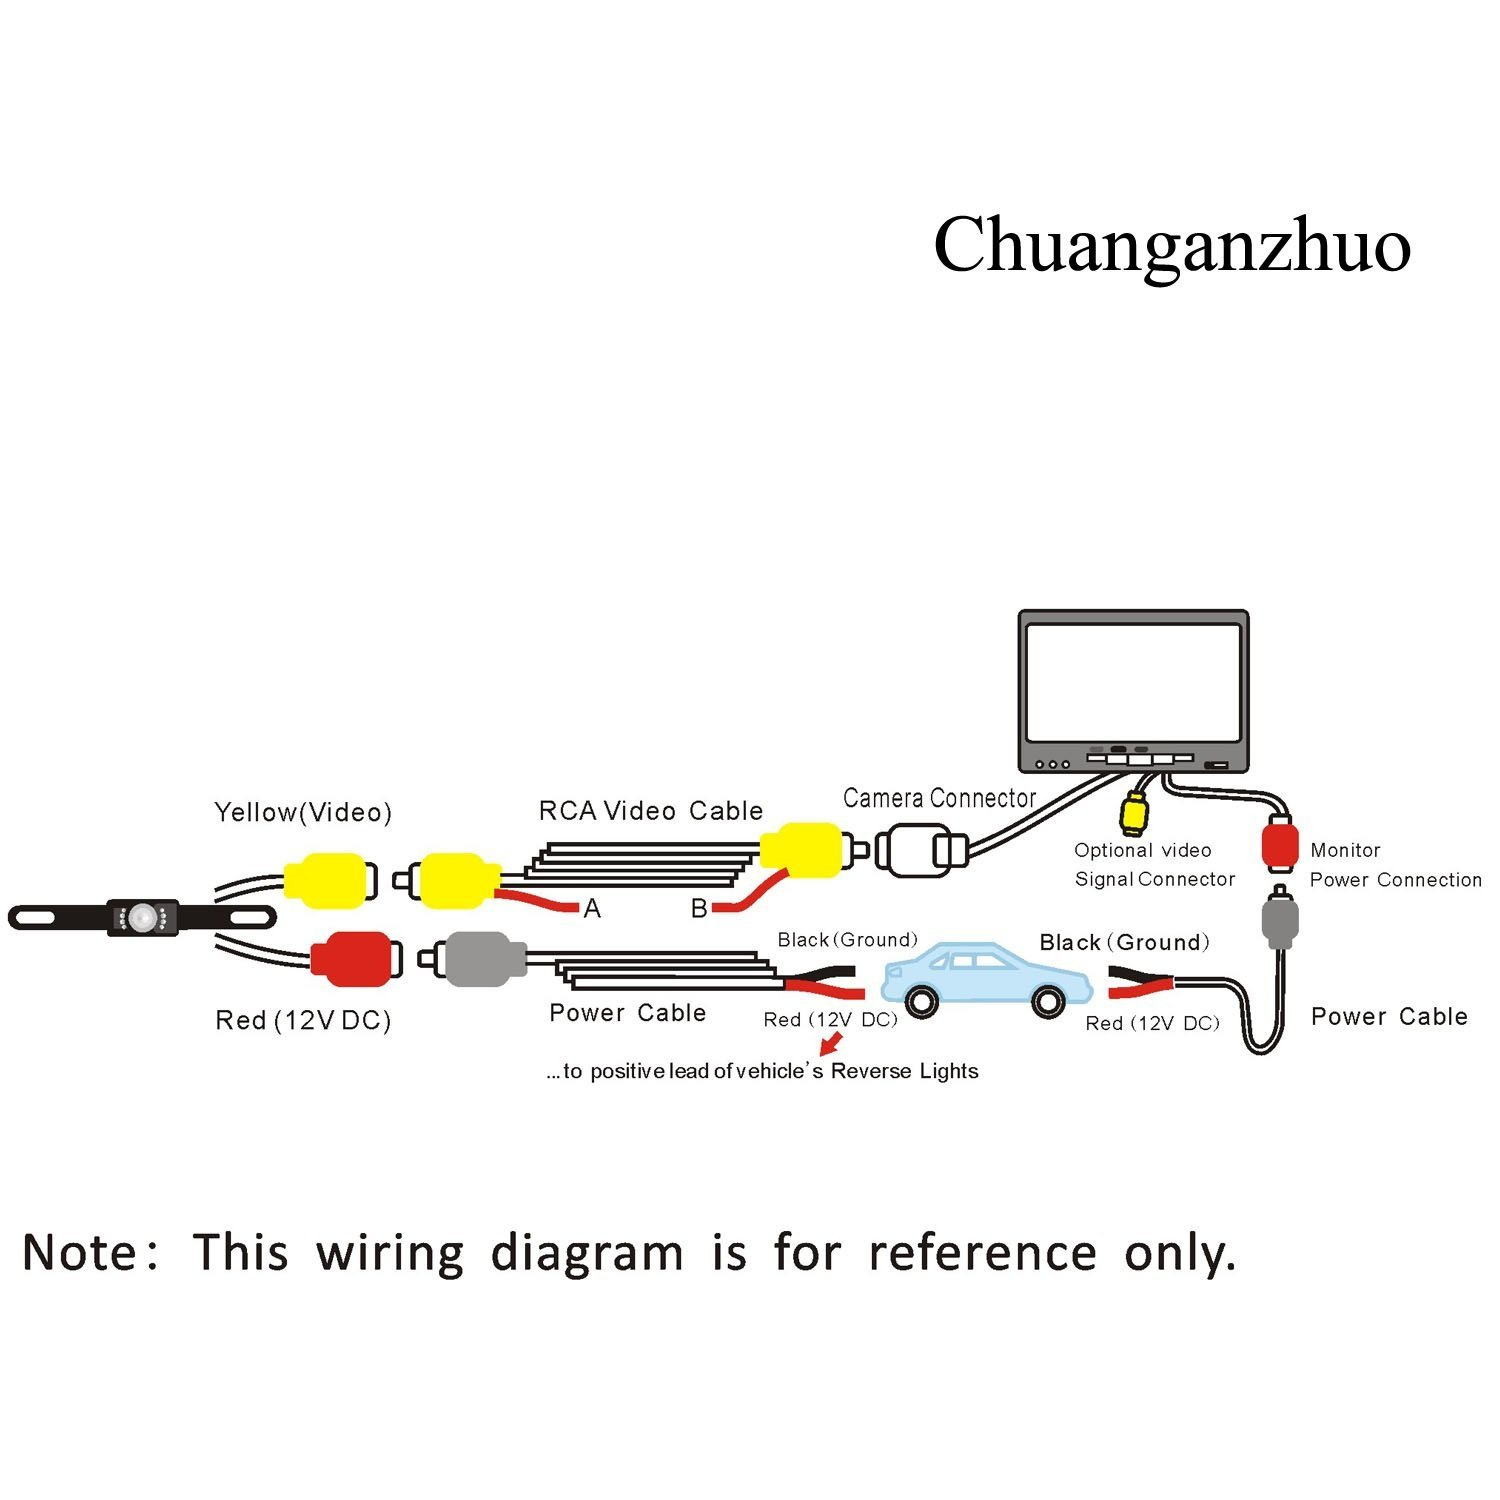 safety vision camera wiring diagram Collection-Amazon Backup Camera and Monitor Kit Chuanganzhuo License Plate CMOS Wide Angle Back up Camera With 7 LED Night Vision 4 3 TFT LCD Monitor Car 2-c